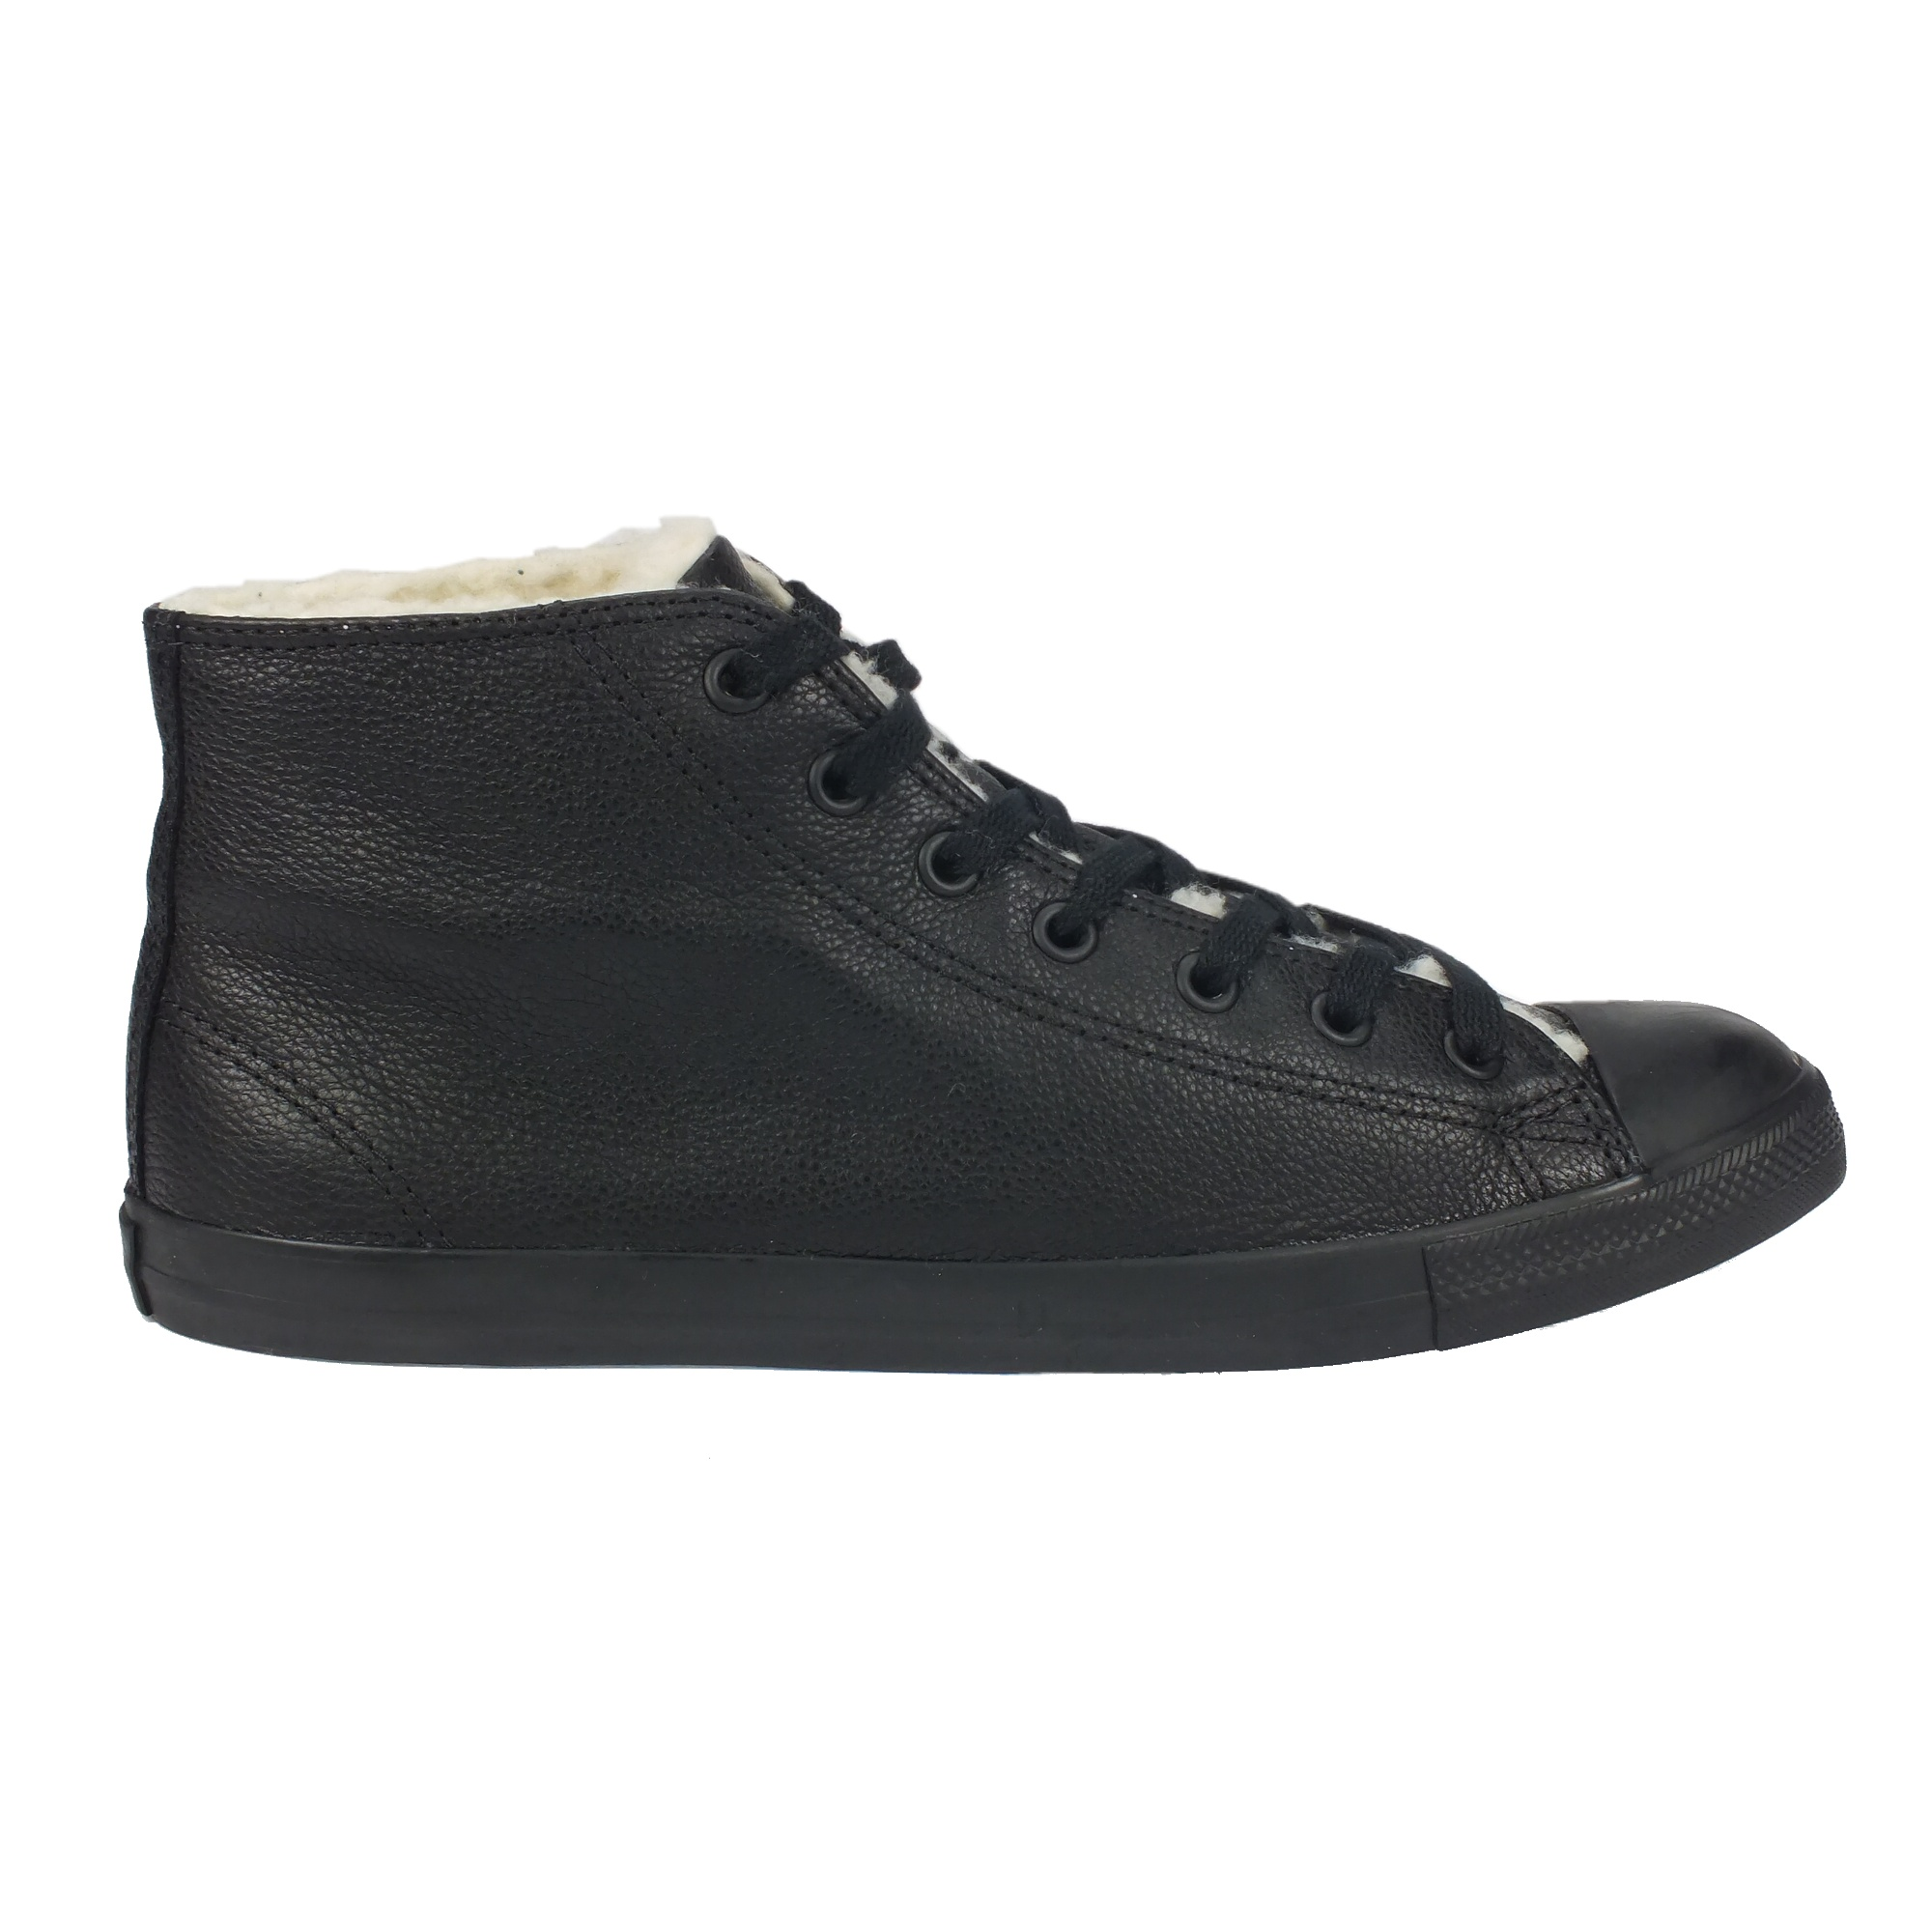 converse boot mid winter schuhe sneaker boots gef ttert damen herren leder ebay. Black Bedroom Furniture Sets. Home Design Ideas